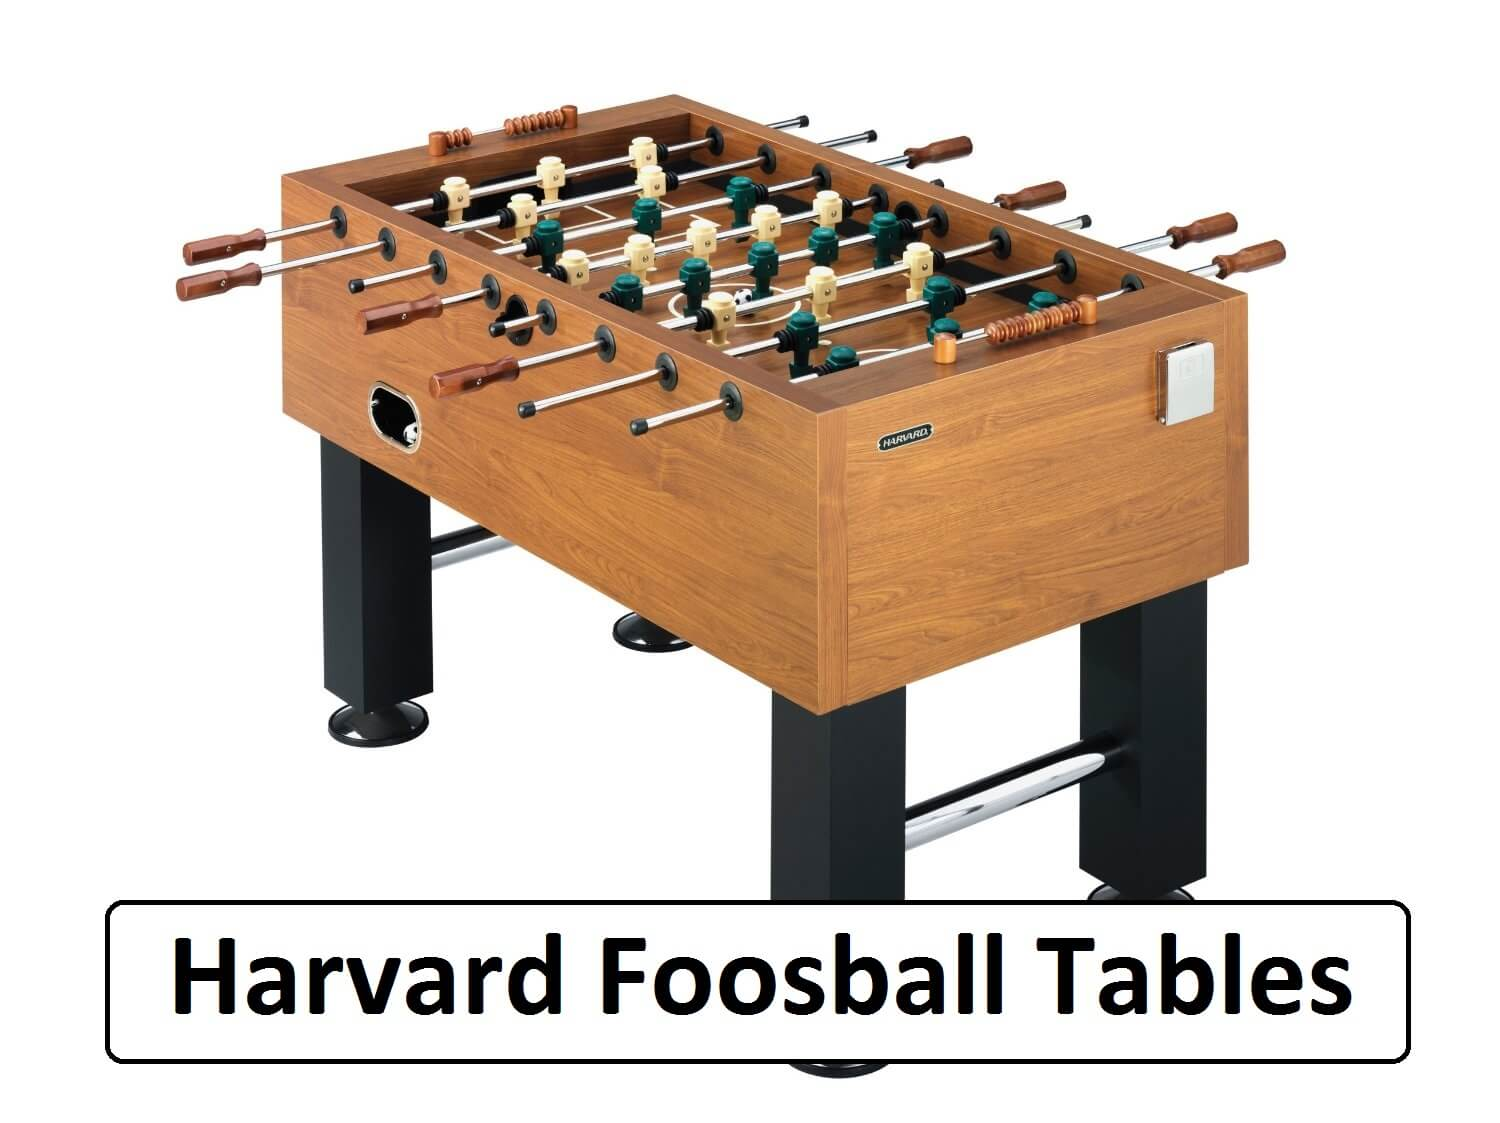 Harvard Foosball Table - Find Best Models   Their Reviews! fb1e46804105